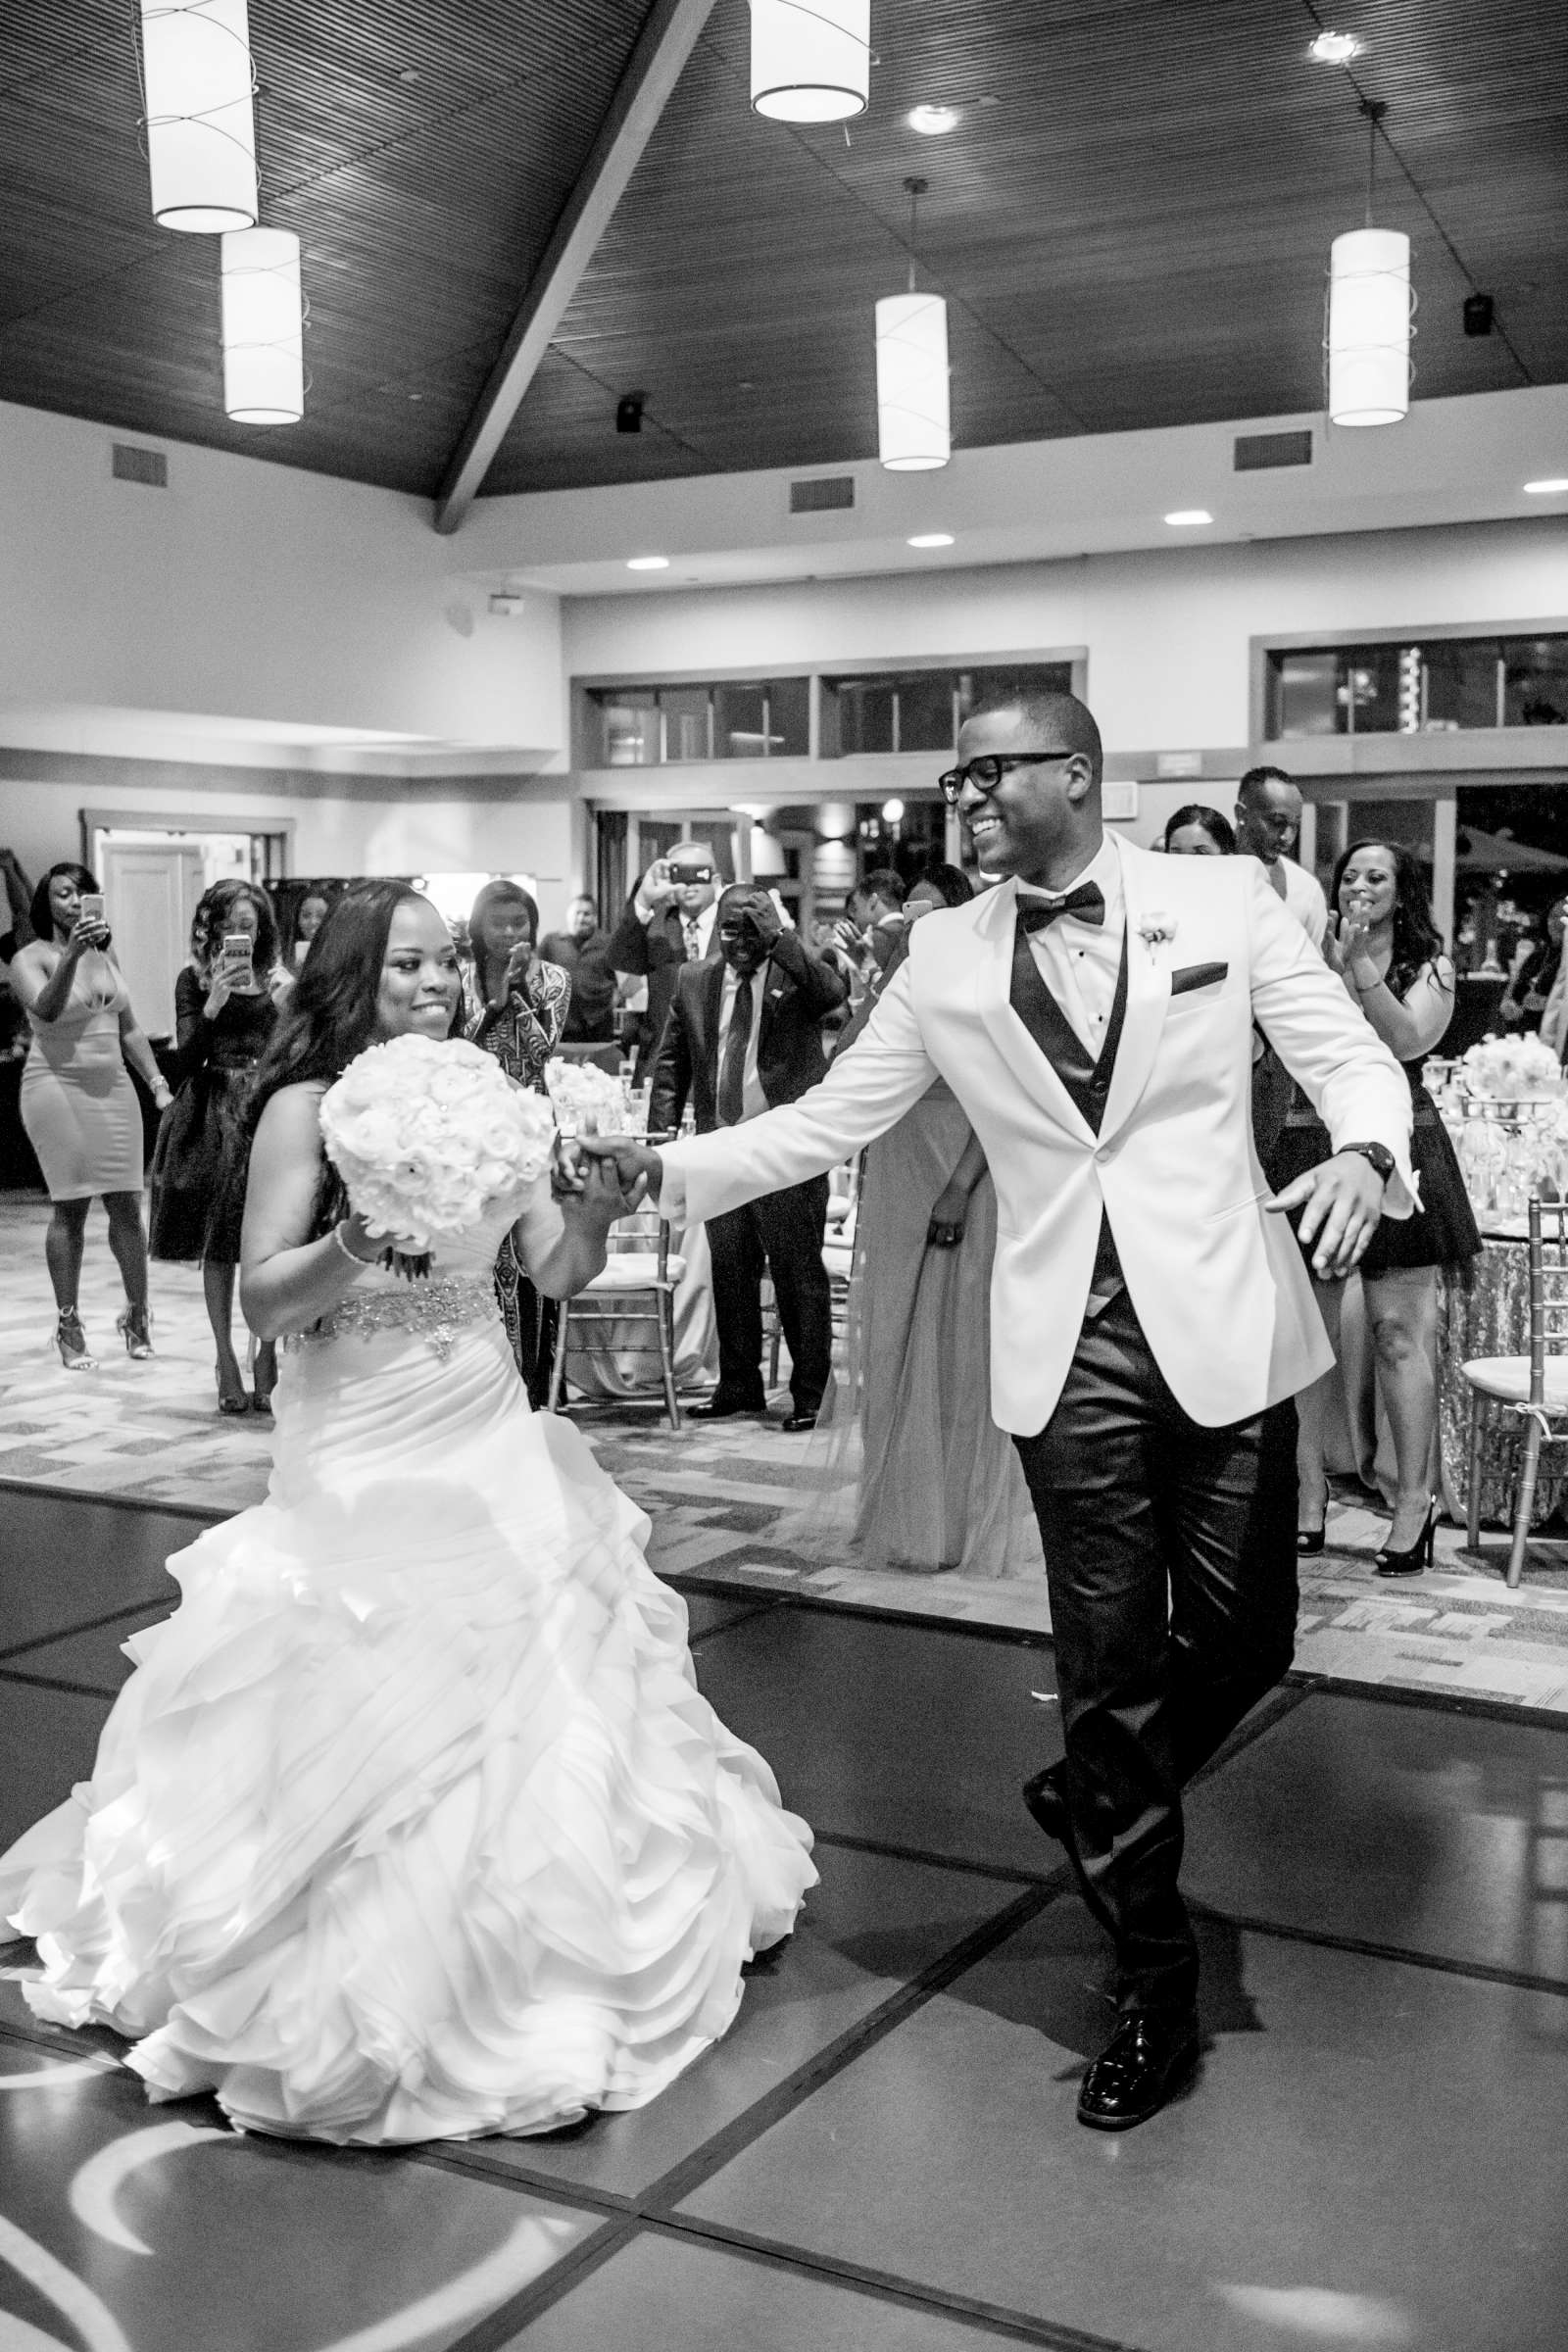 Coronado Community Center Wedding coordinated by First Comes Love Weddings & Events, Nikia and Charles Wedding Photo #70 by True Photography